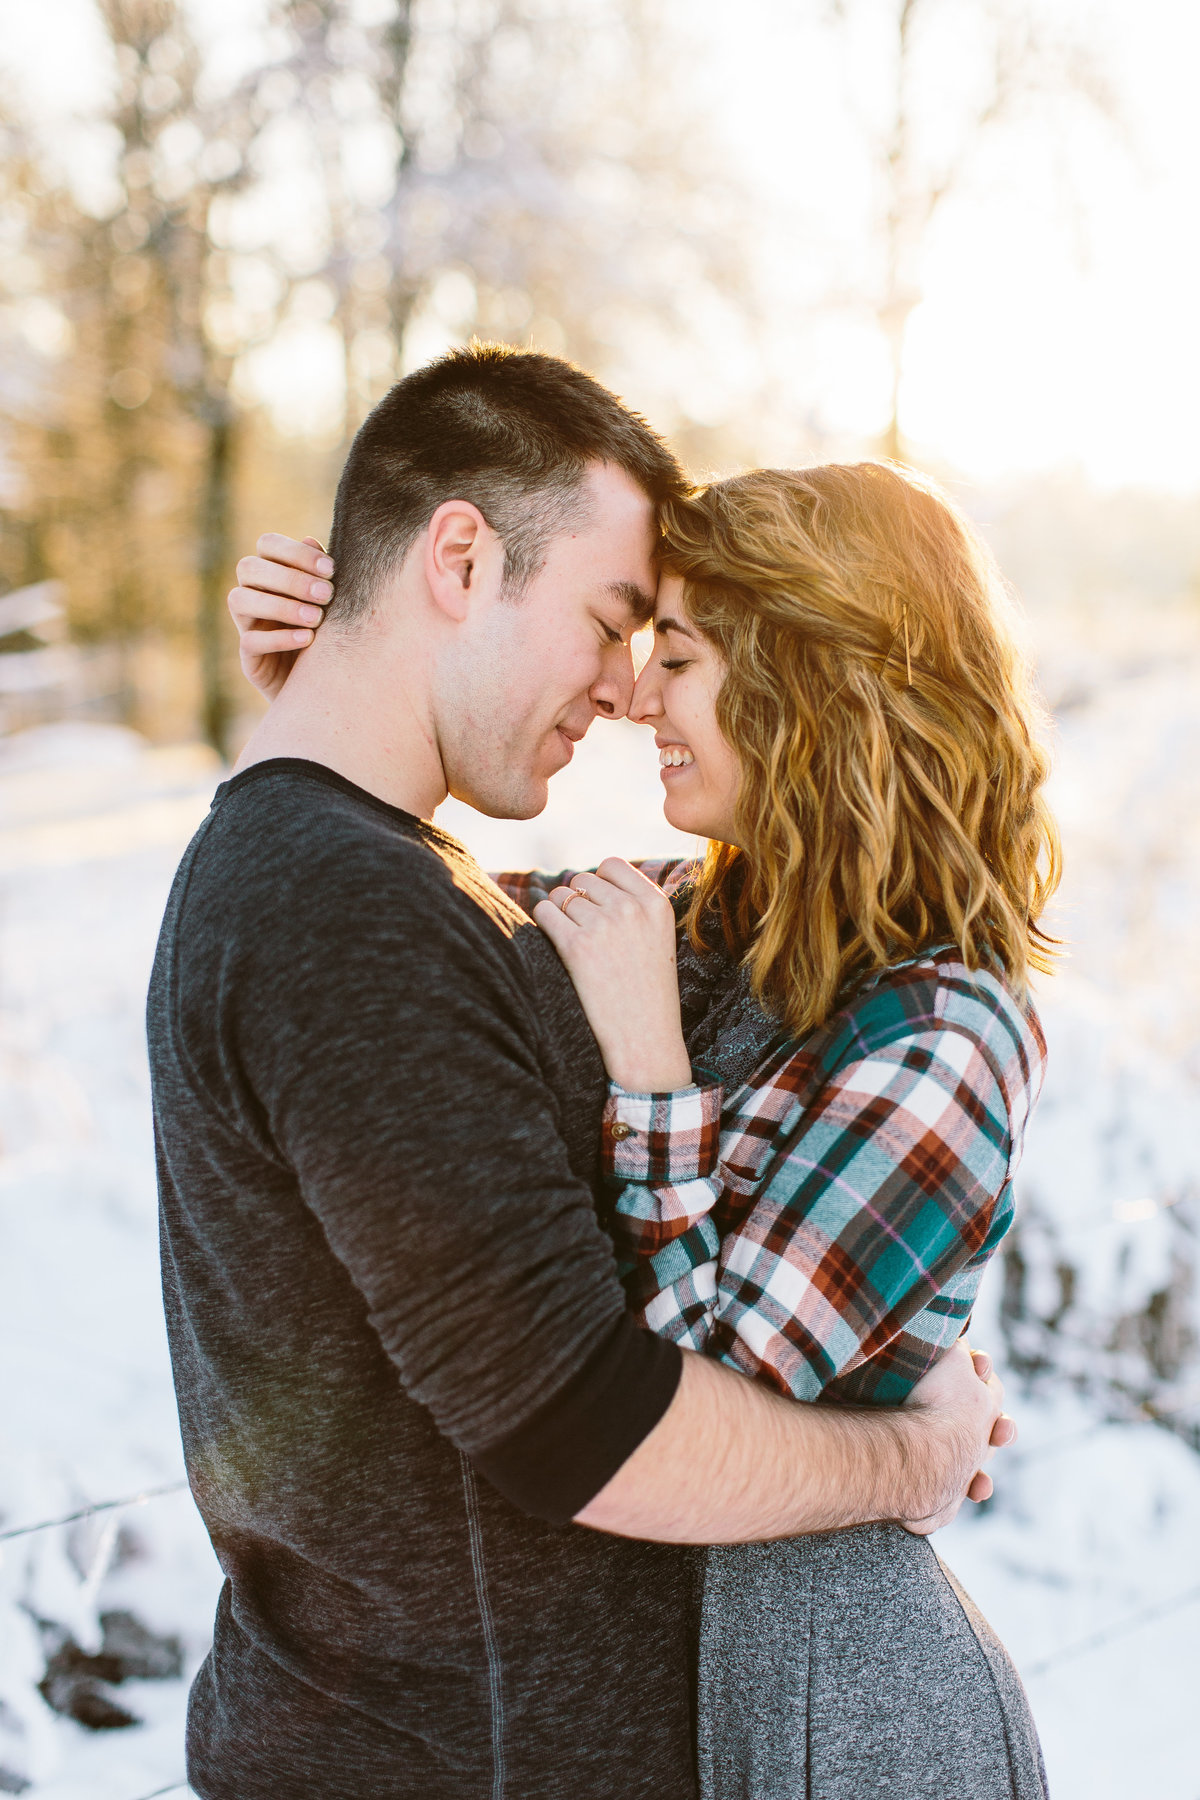 Jack + Alyssa | January Engagement | Lifesong Photography | Portland Wedding Photographer (7 of 132)-2